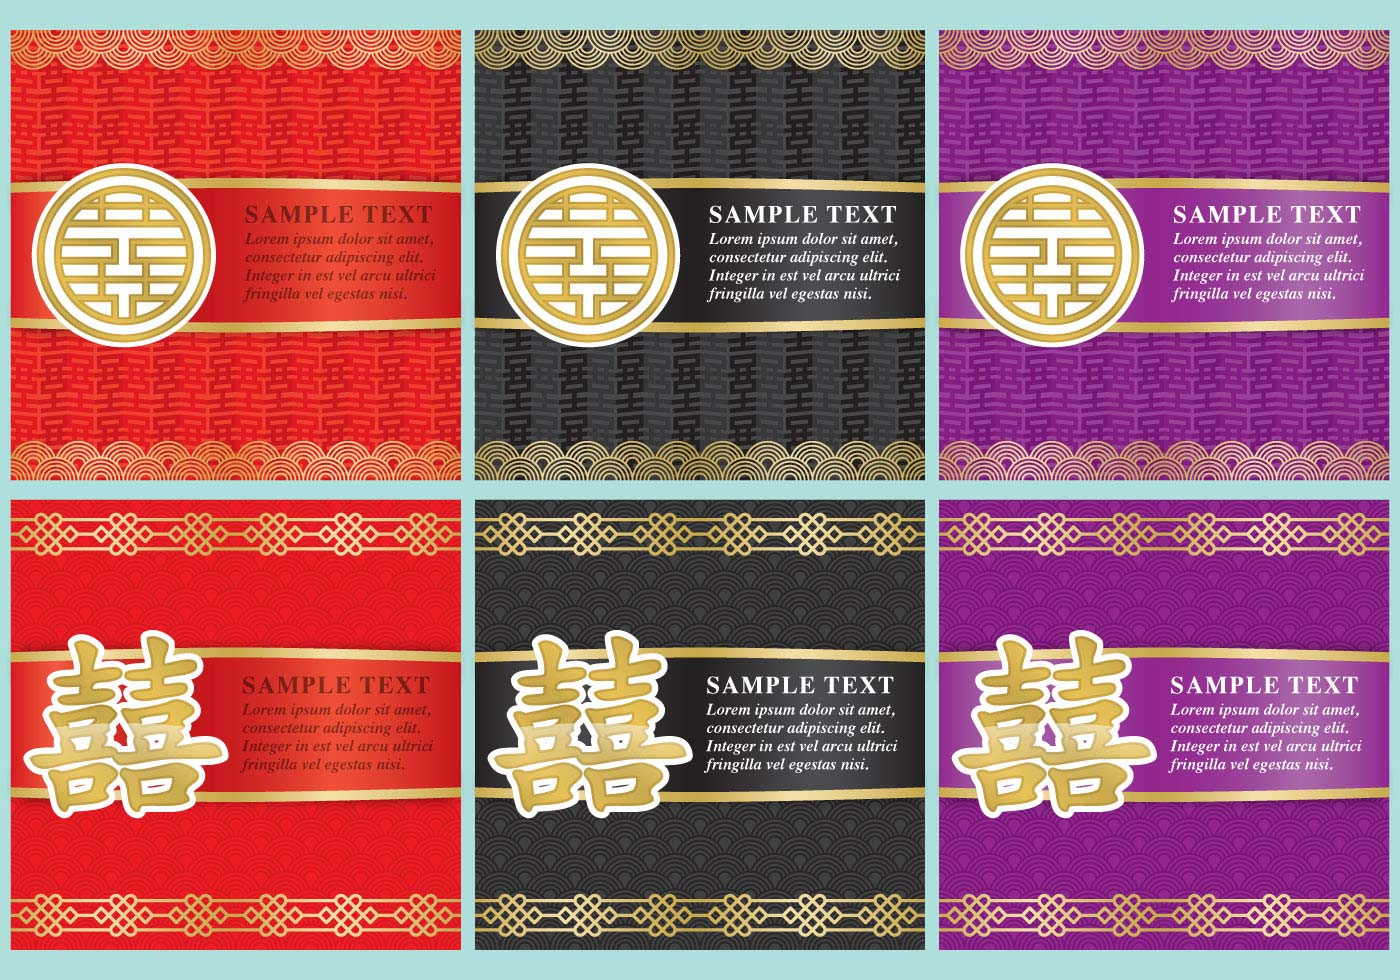 Chinese Wedding Cards - Download Free Vector Art, Stock Graphics ...